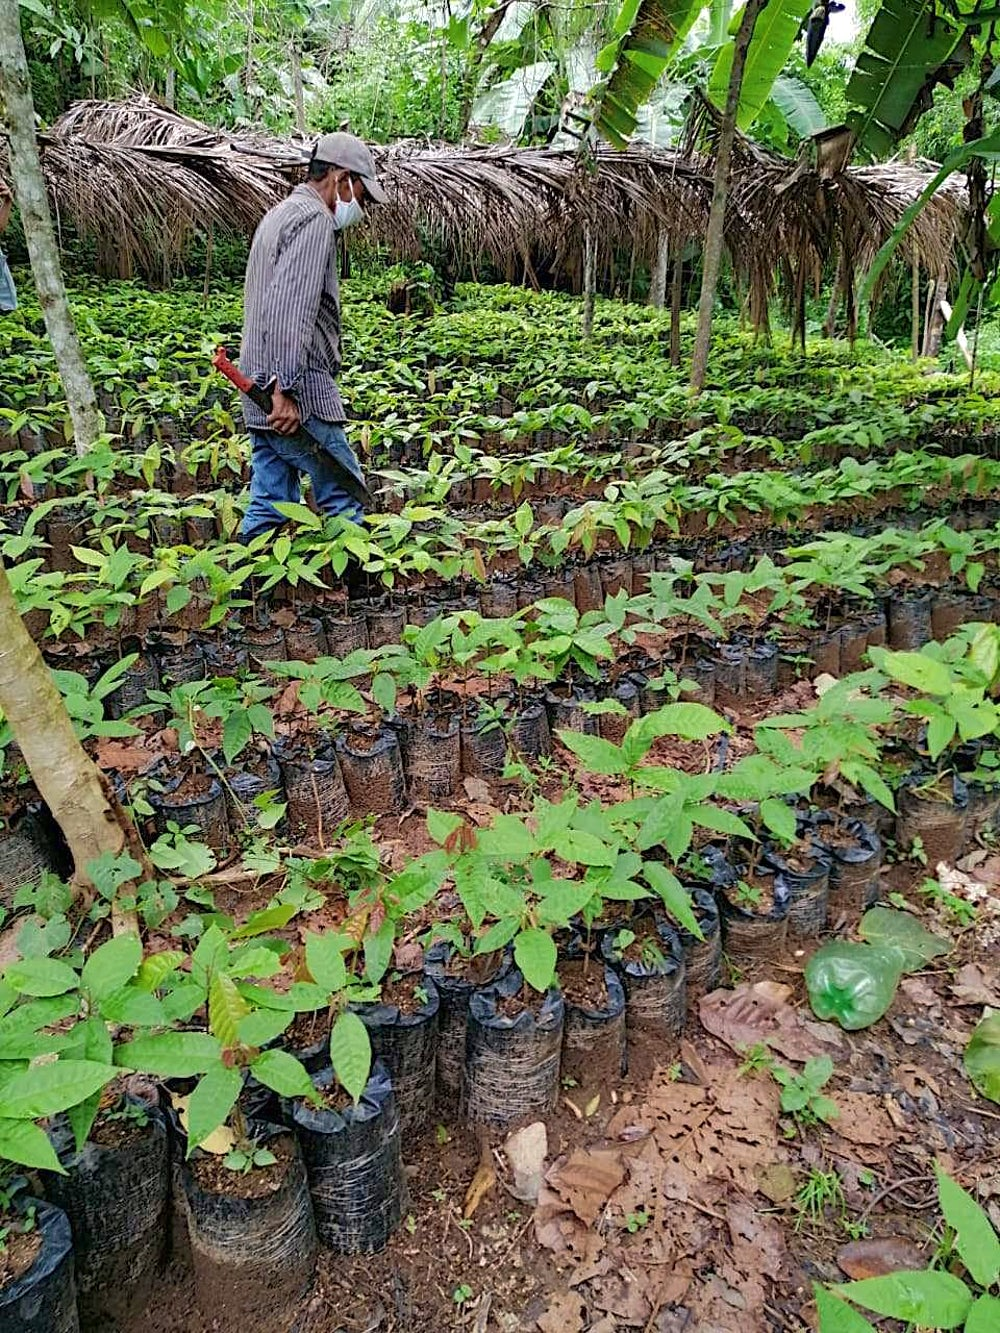 A man walks through rows of green cacao plants, away from the camera. He is wearing a surgical mask to protect himself from the COVID-19 virus.